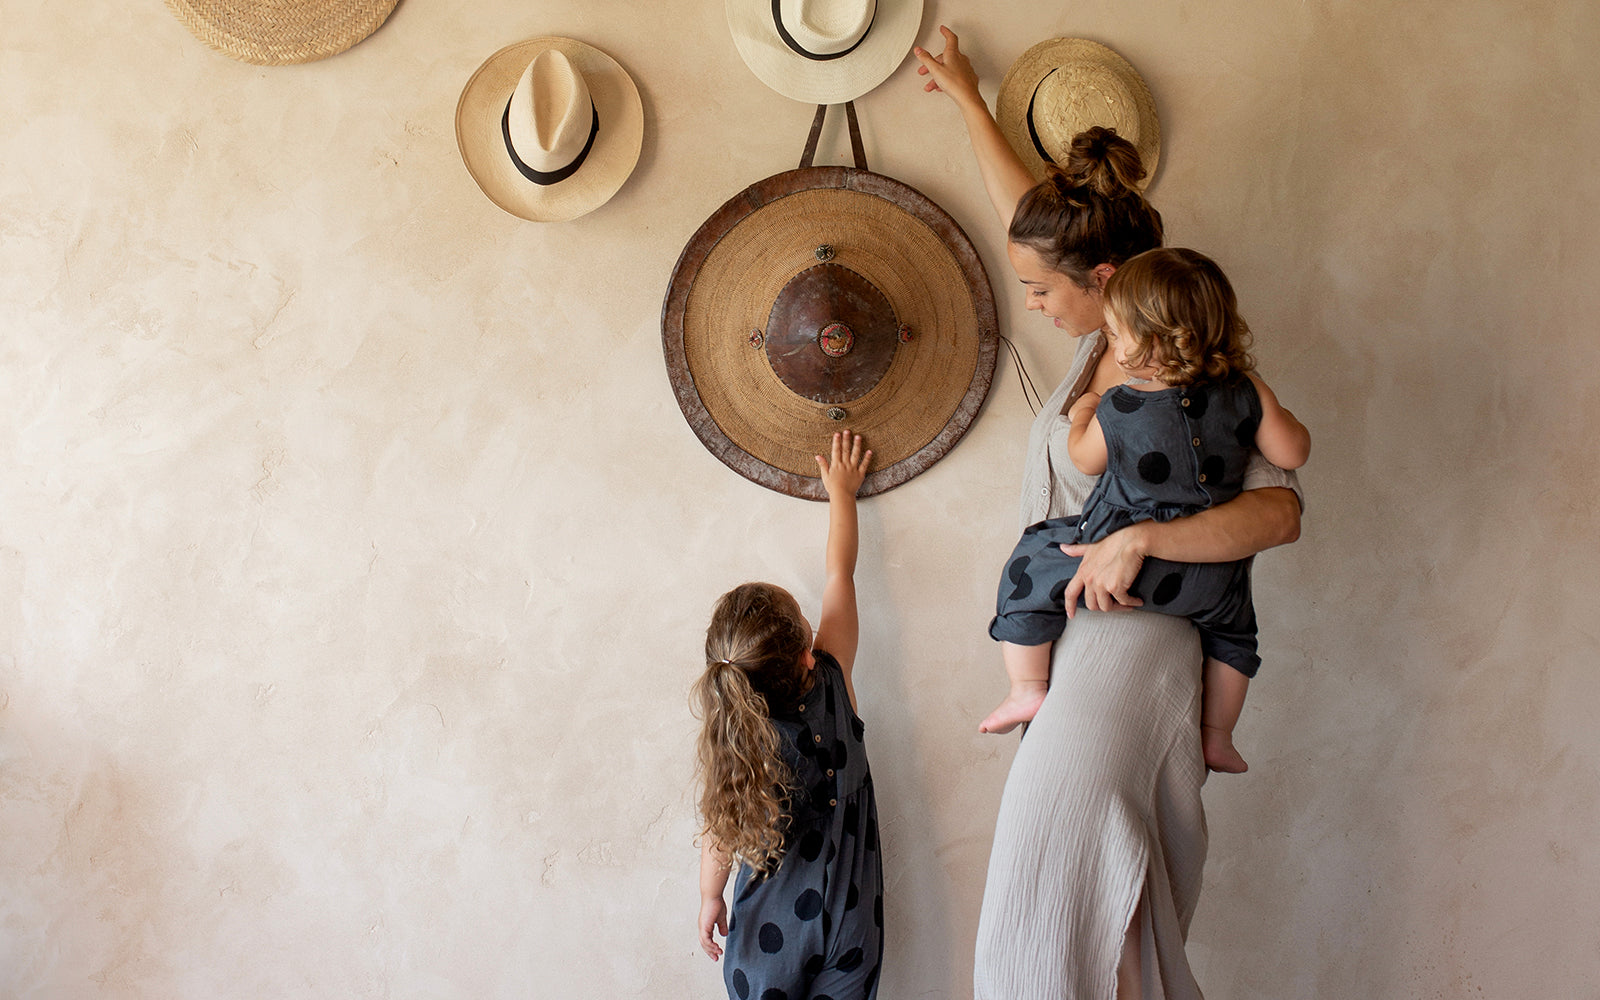 Girl reaching for some hats hanging on a wall with her mother.